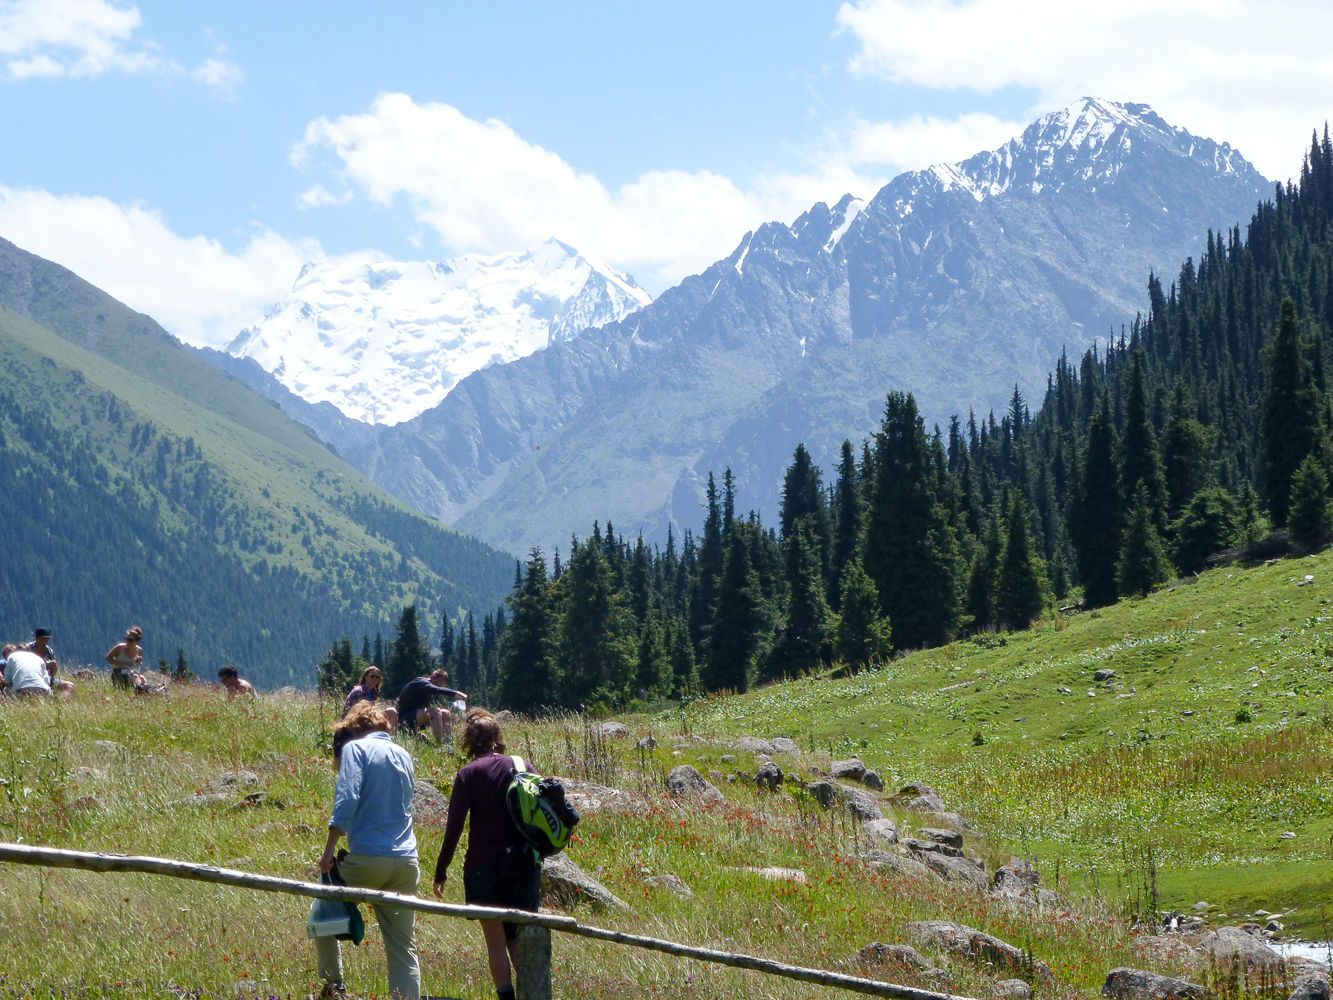 Trip to Altyn Arashan Valley during Kyrgyzstan Tour